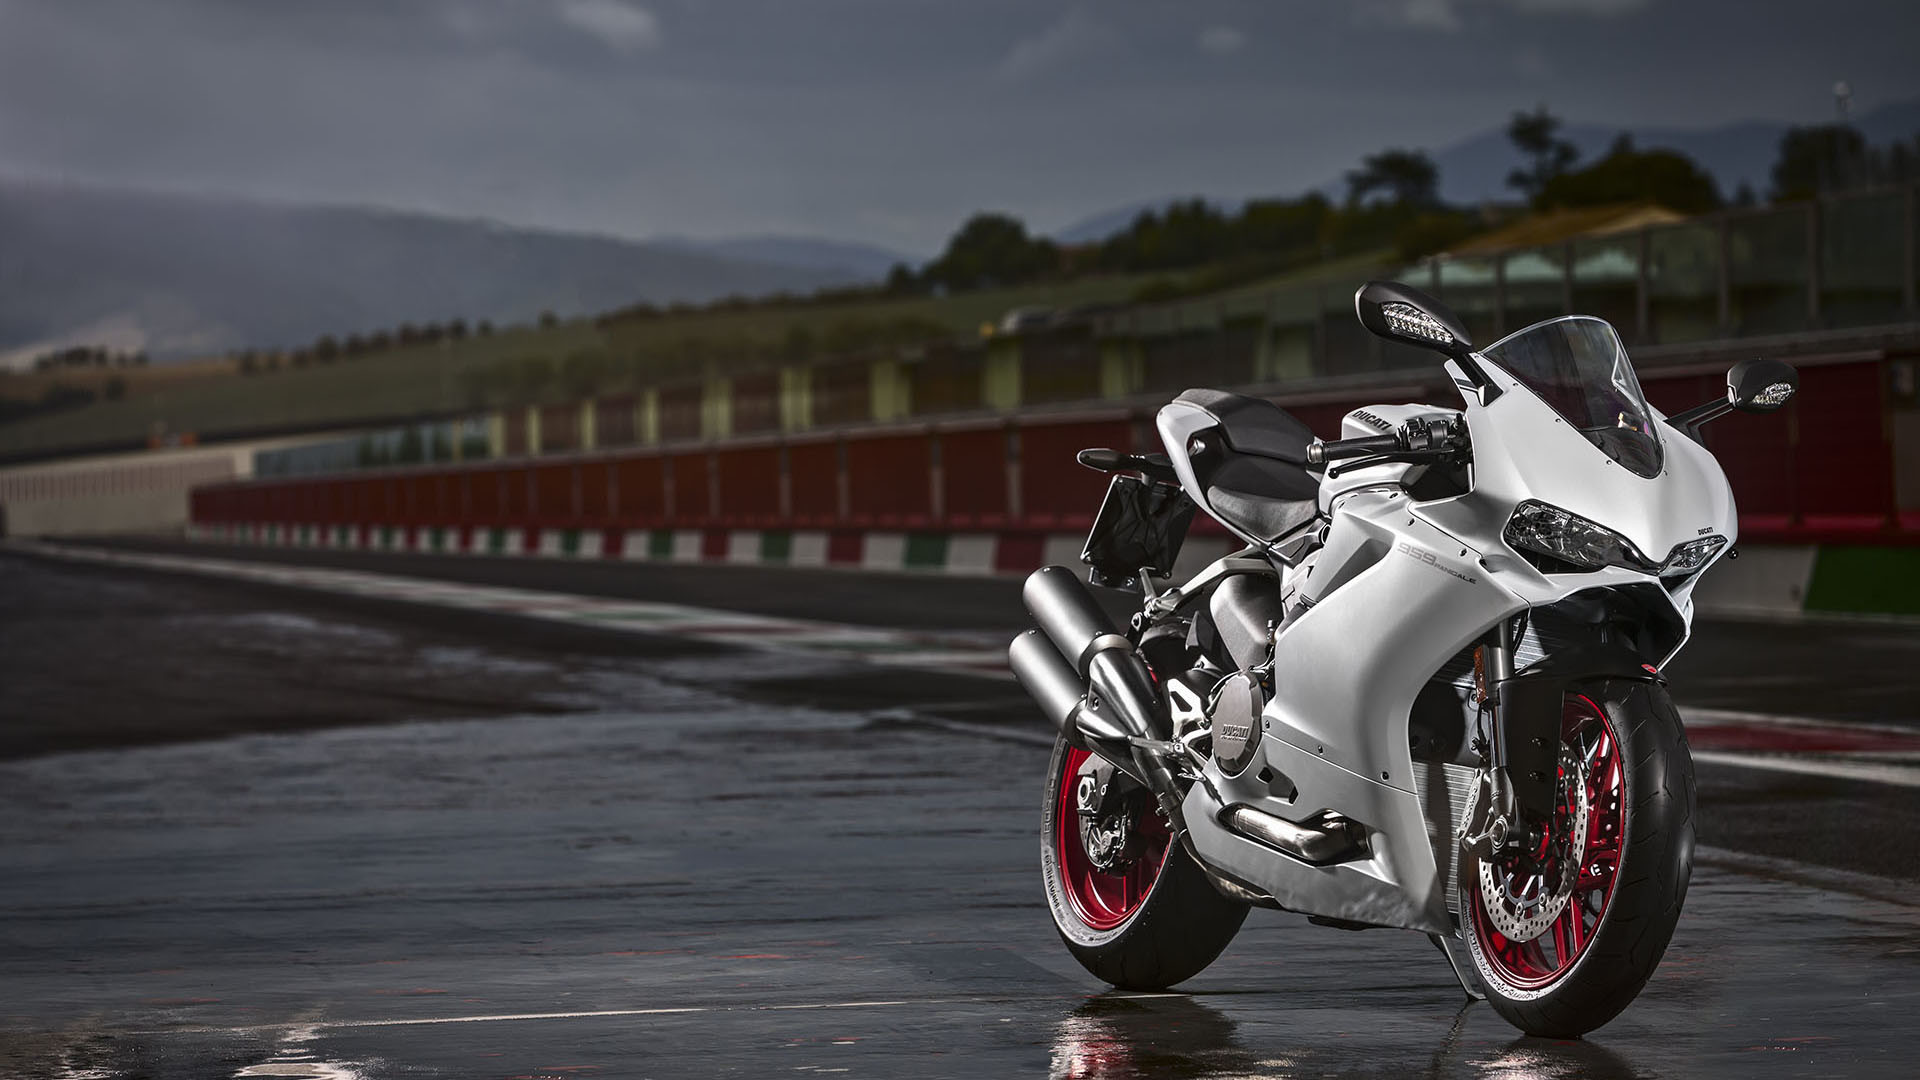 1920x1080 Ducati Panigale 959 #motos #superbikes #wallpapers